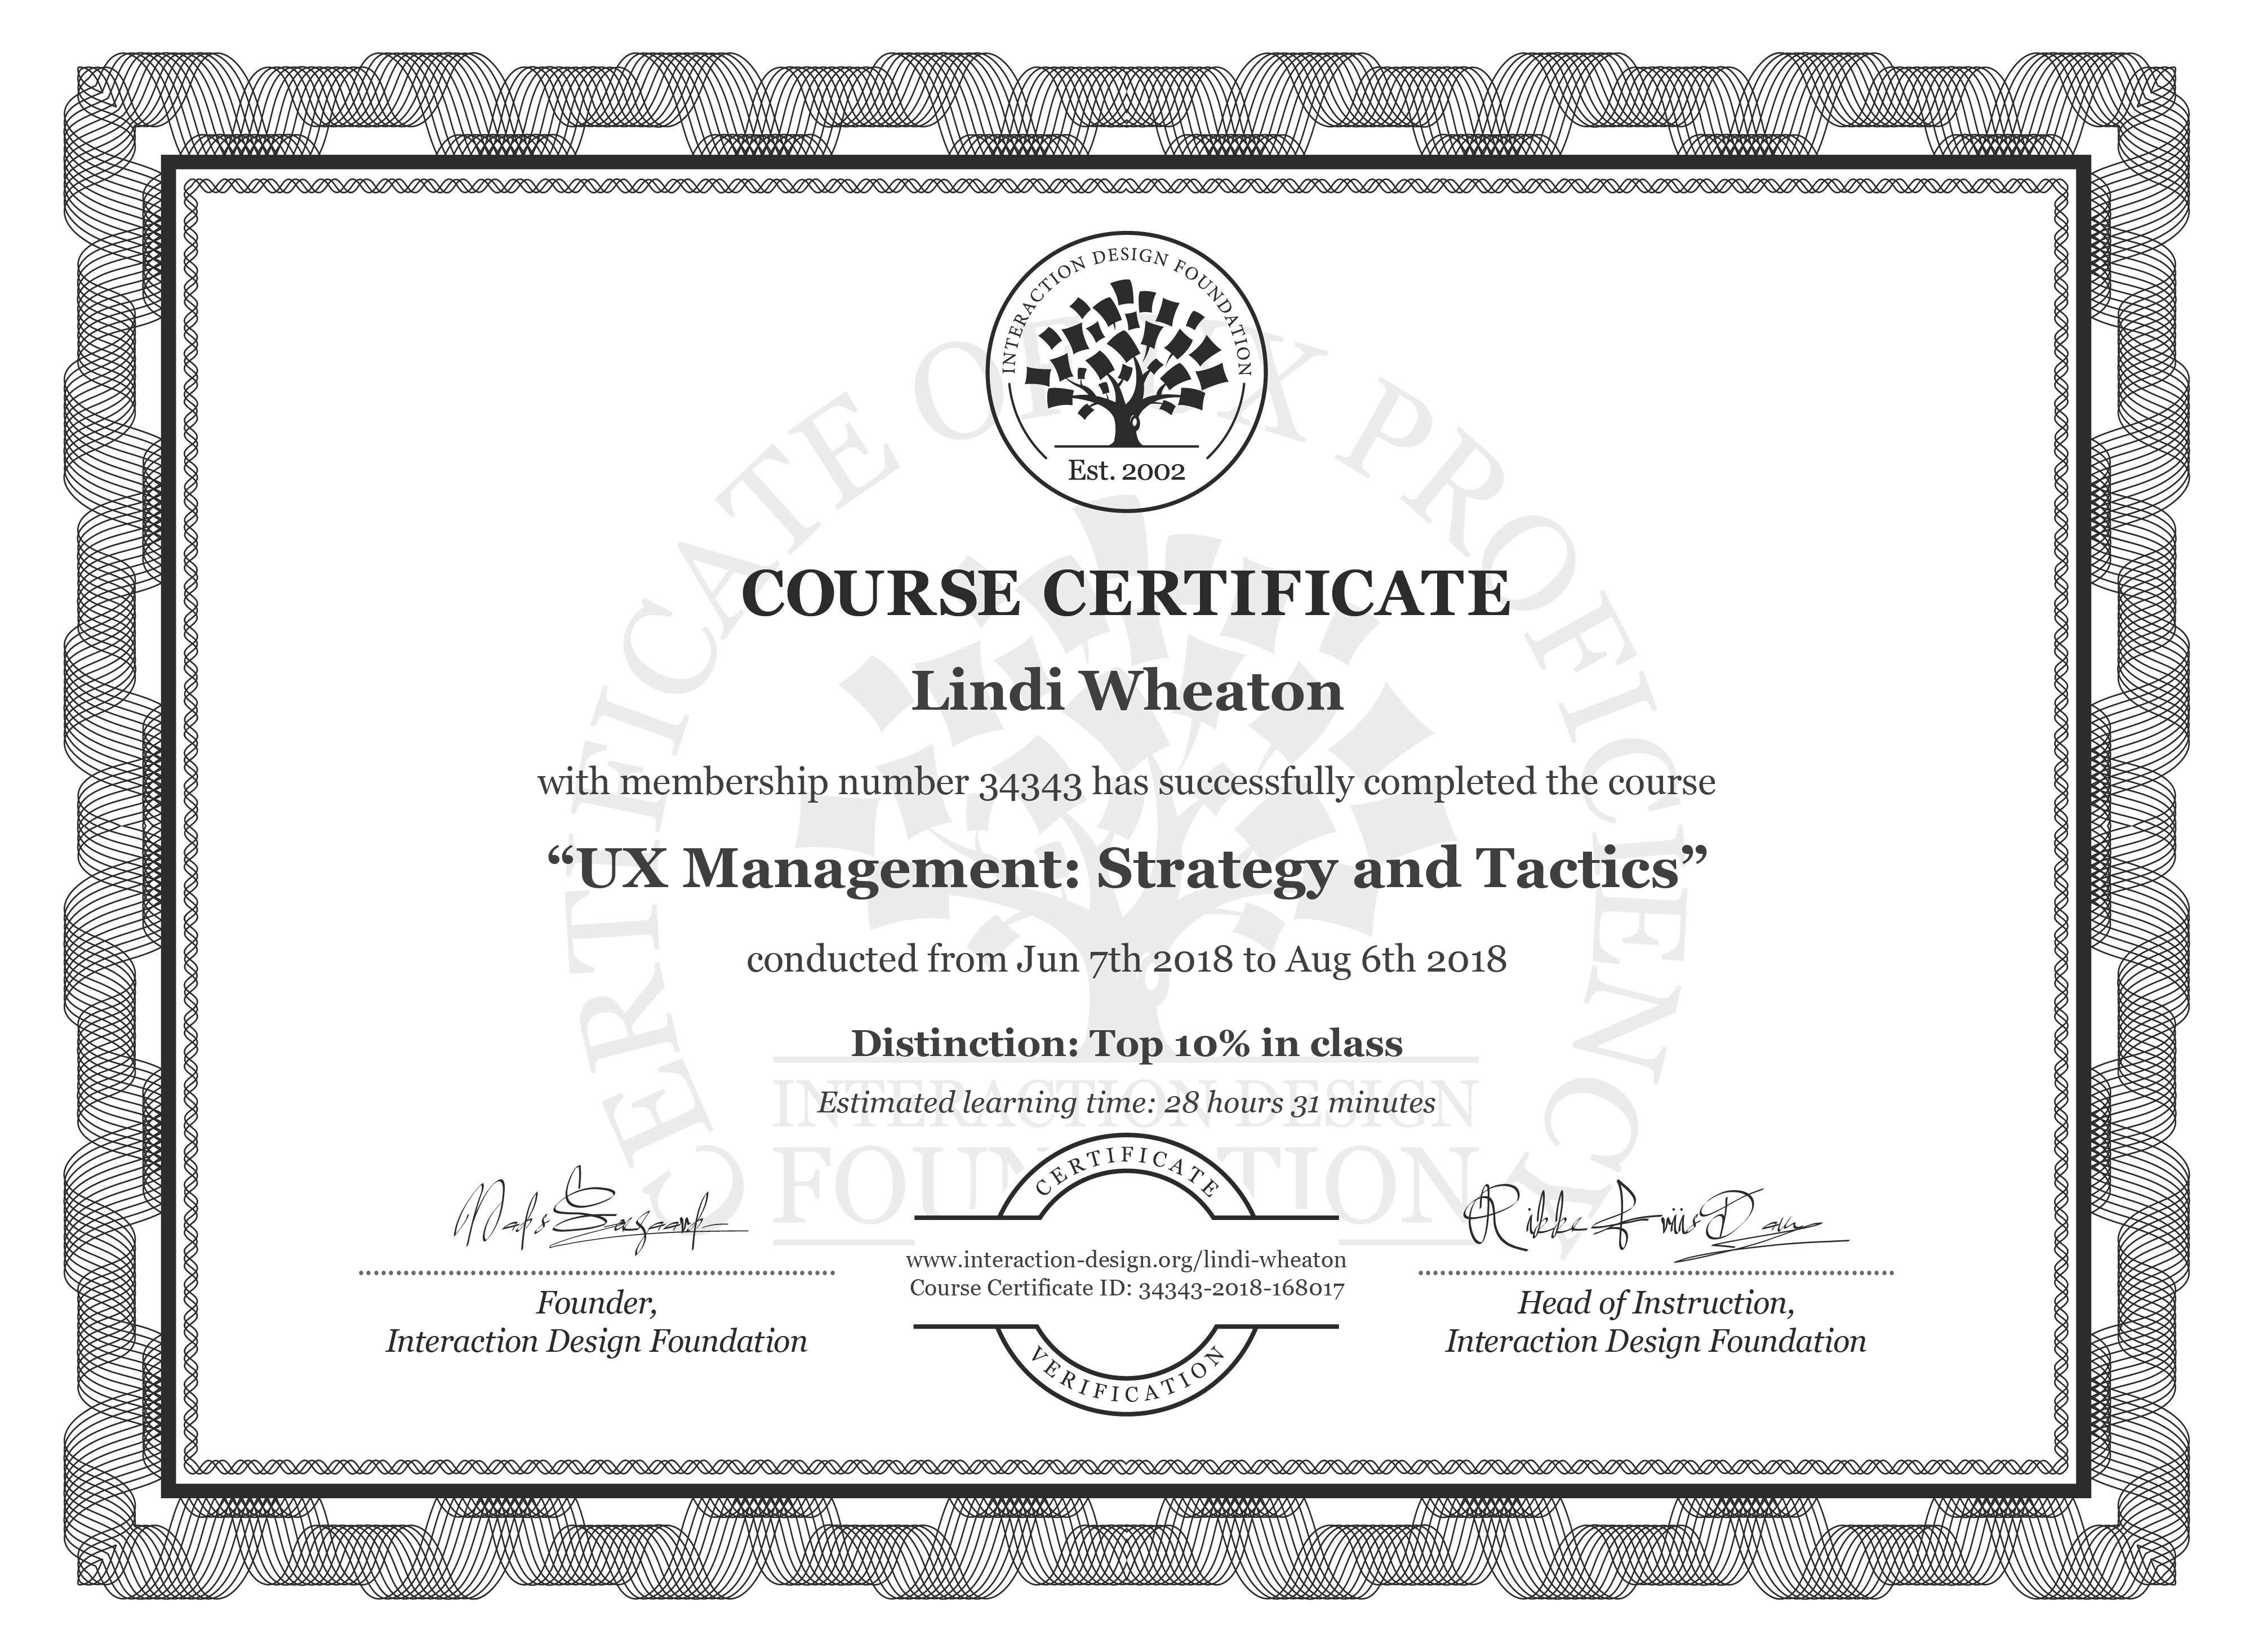 Lindi Wheaton's Course Certificate: UX Management: Strategy and Tactics